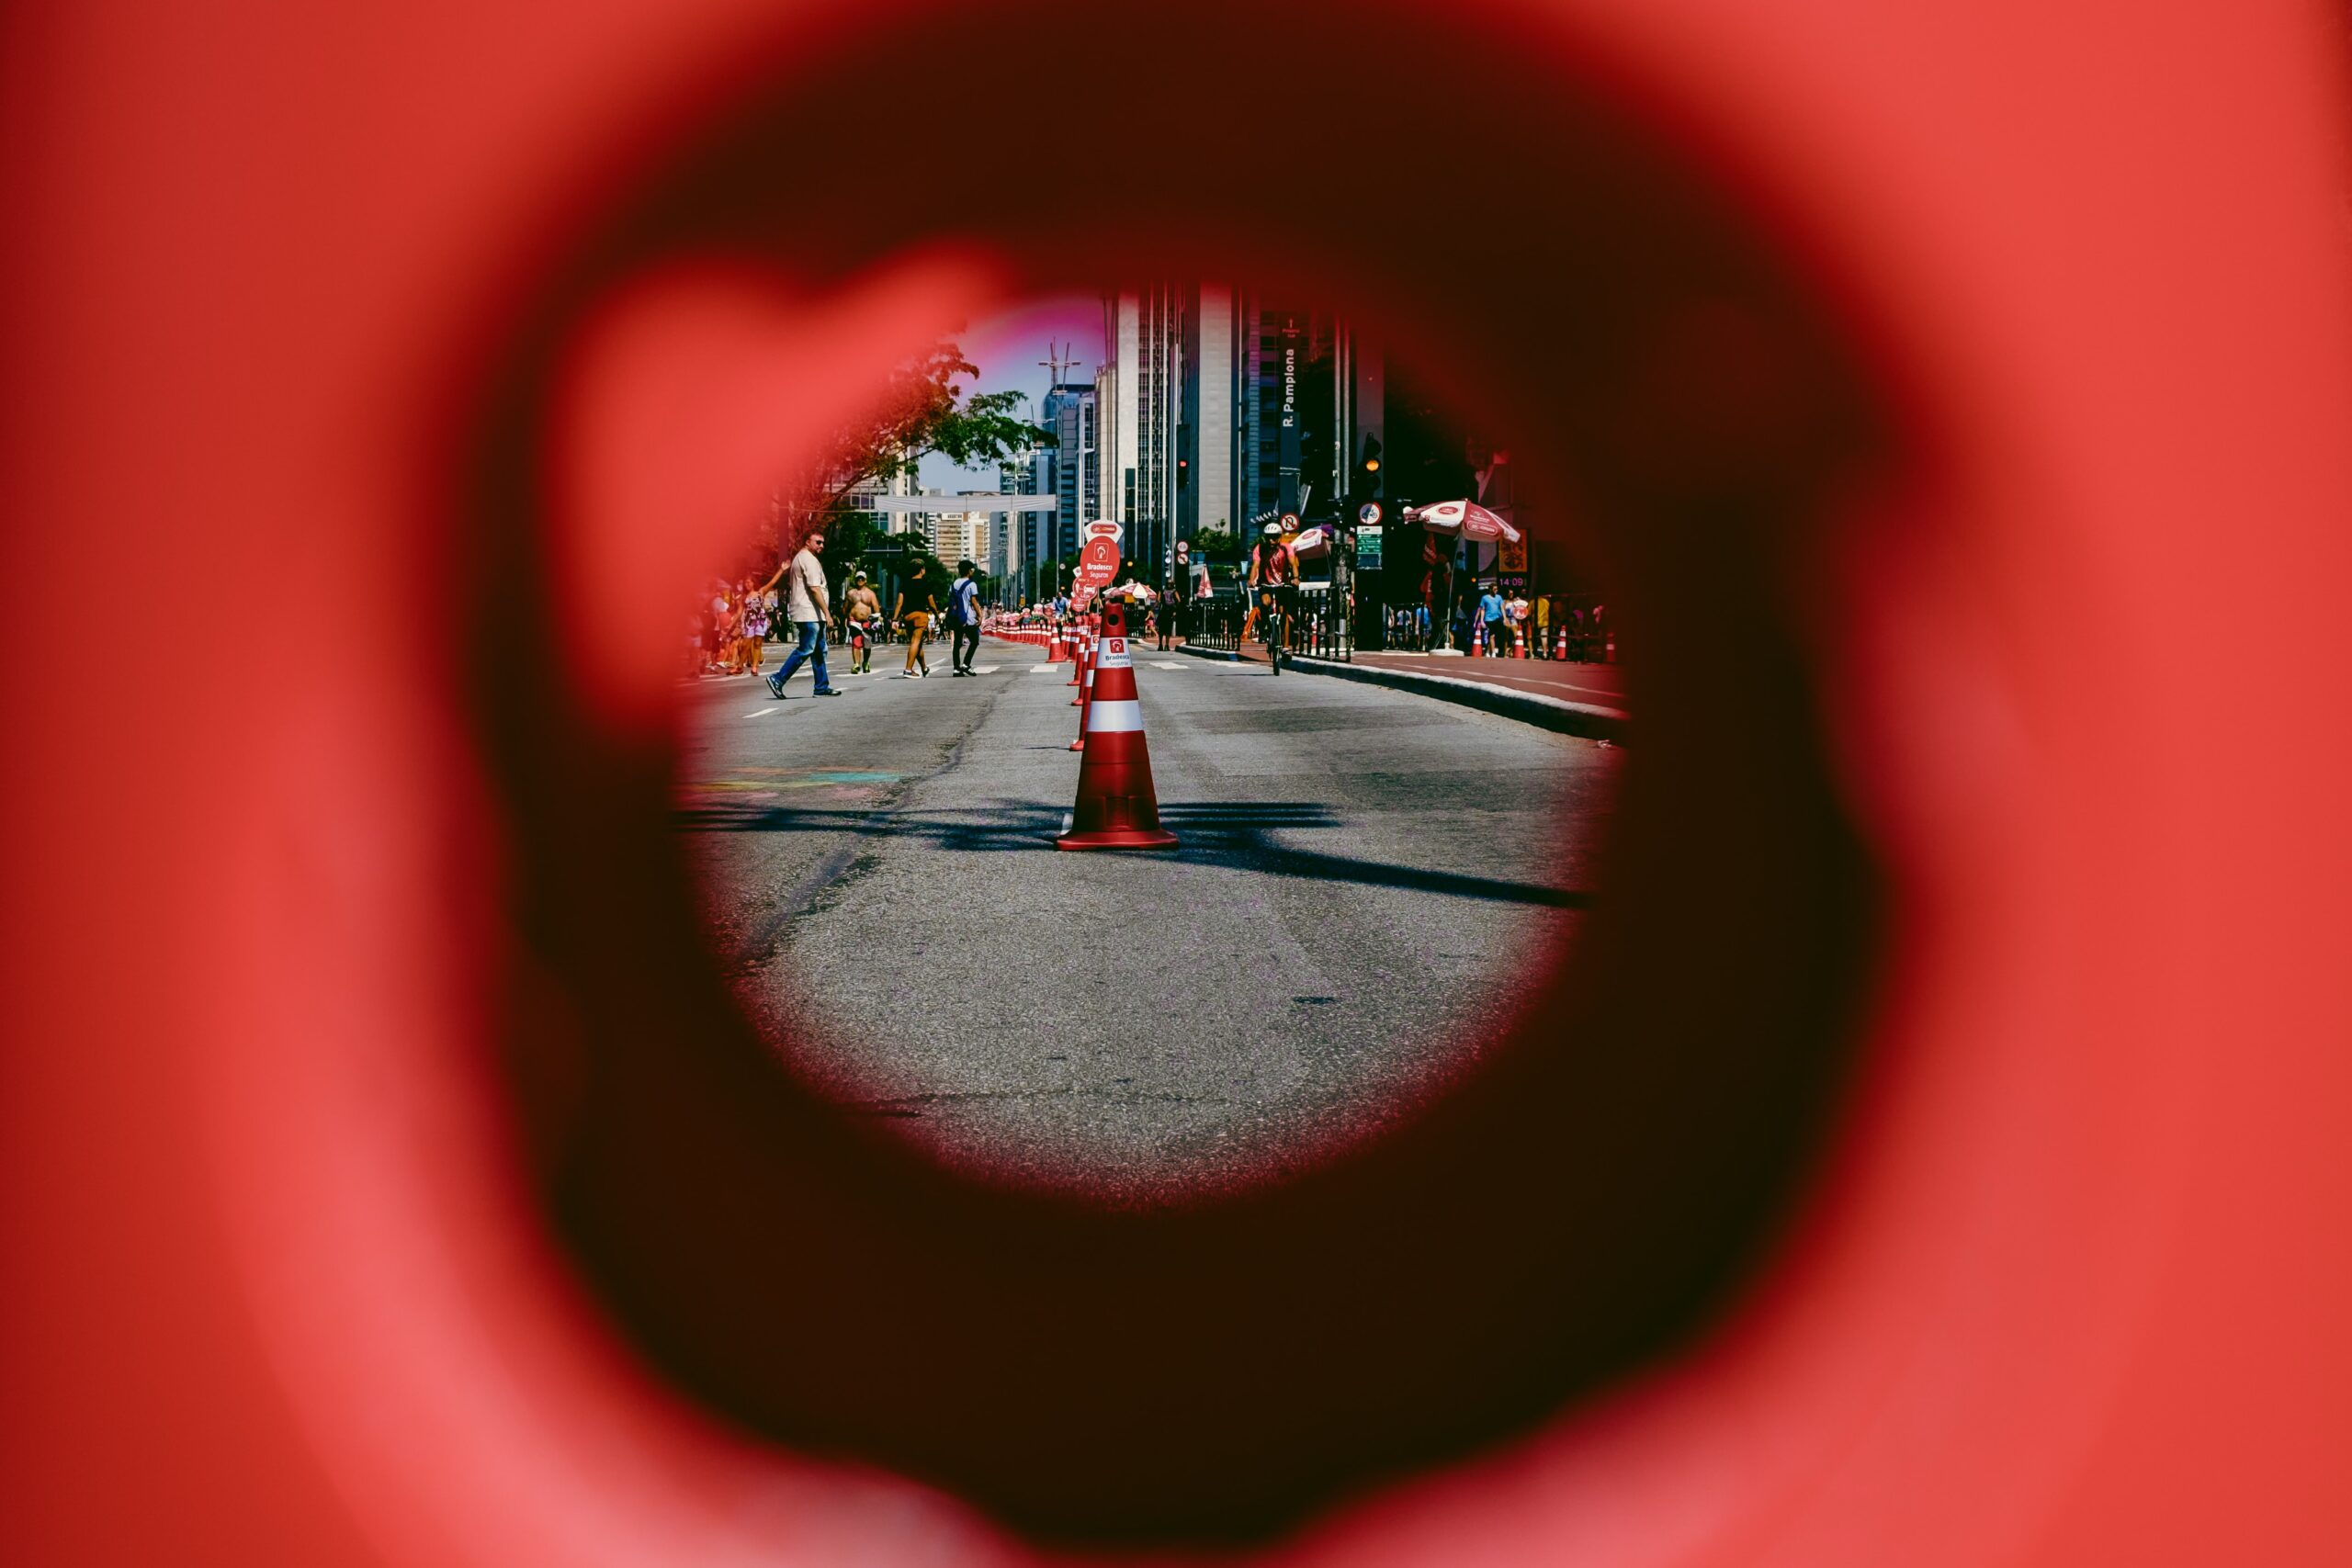 a view of a city street, with a pylon in the middle of the road, framed though the hole of a pylon